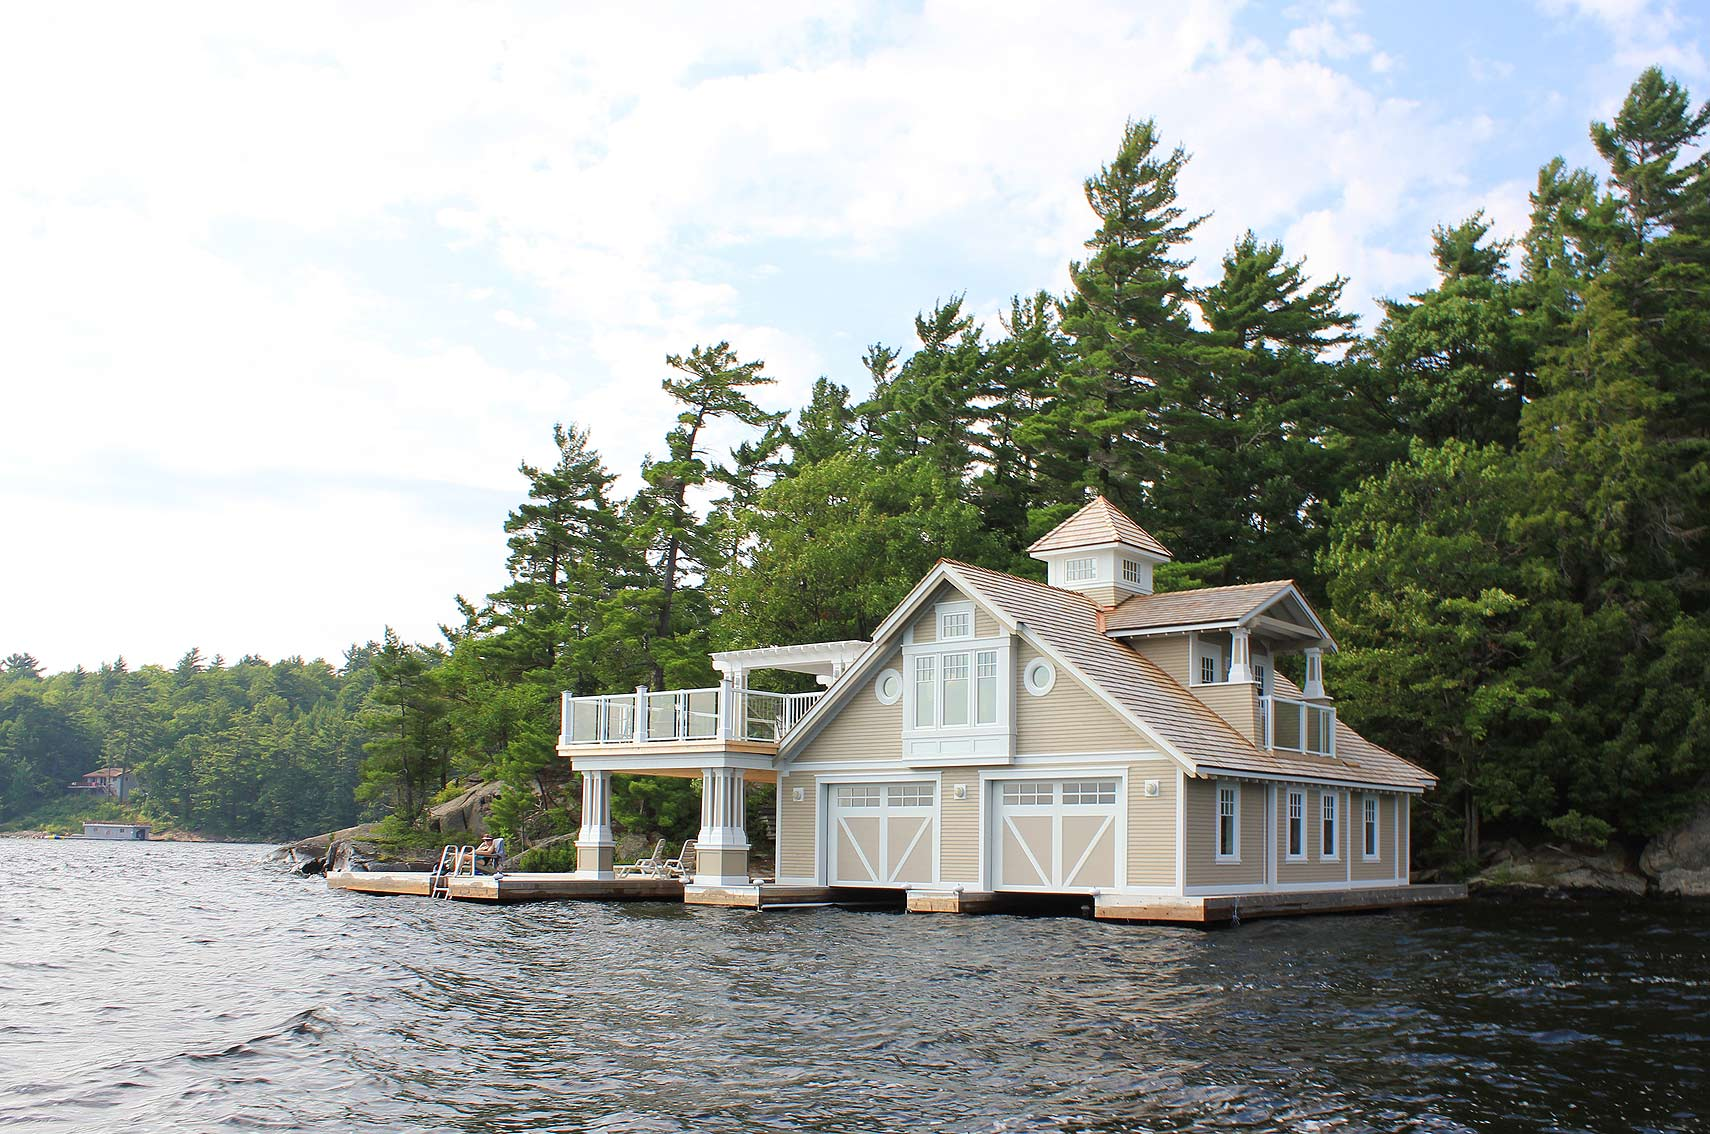 Lake Muskoka Boathouse (3) - Ontario Cottage and Vacation Home